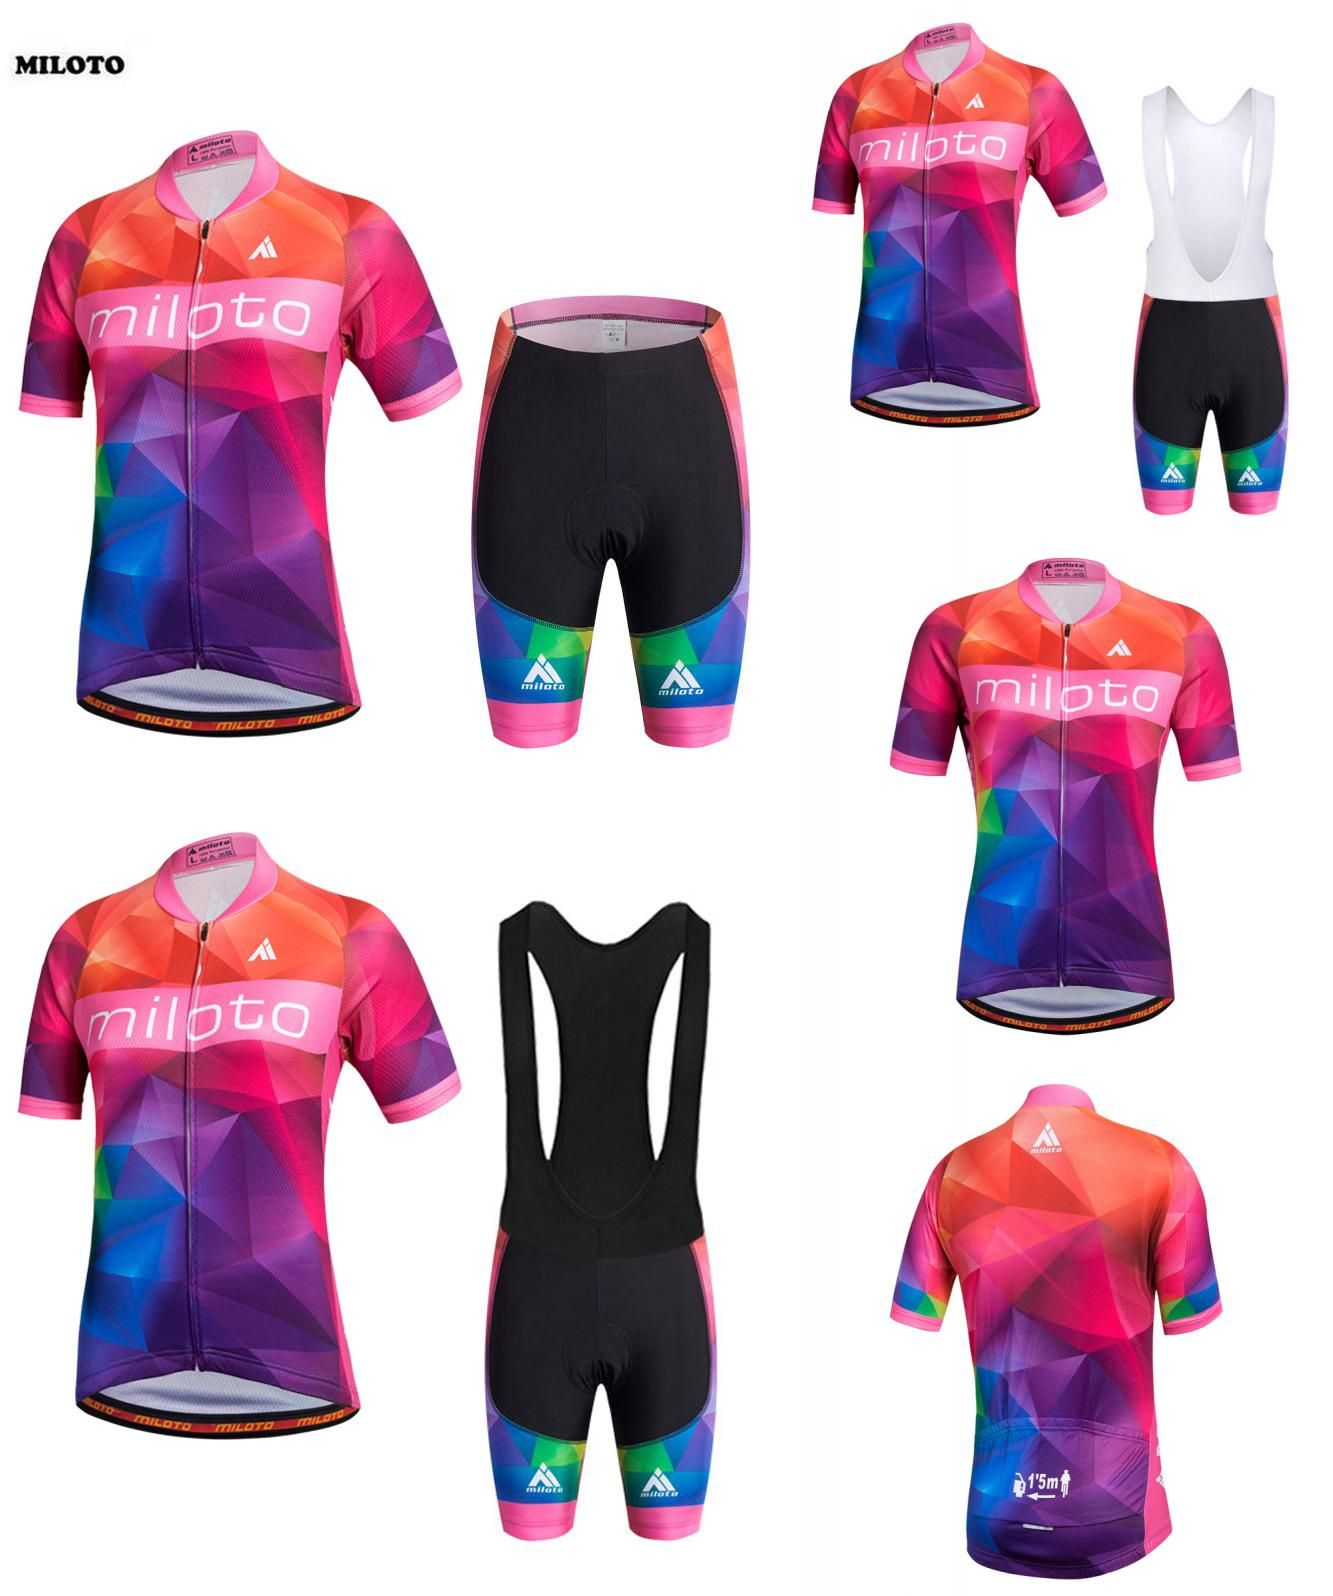 64f98a6d6  Visit to Buy  2017 MILOTO Cycling Jerseys Bike Ropa Ciclismo Short Sleeve  Clothing Set